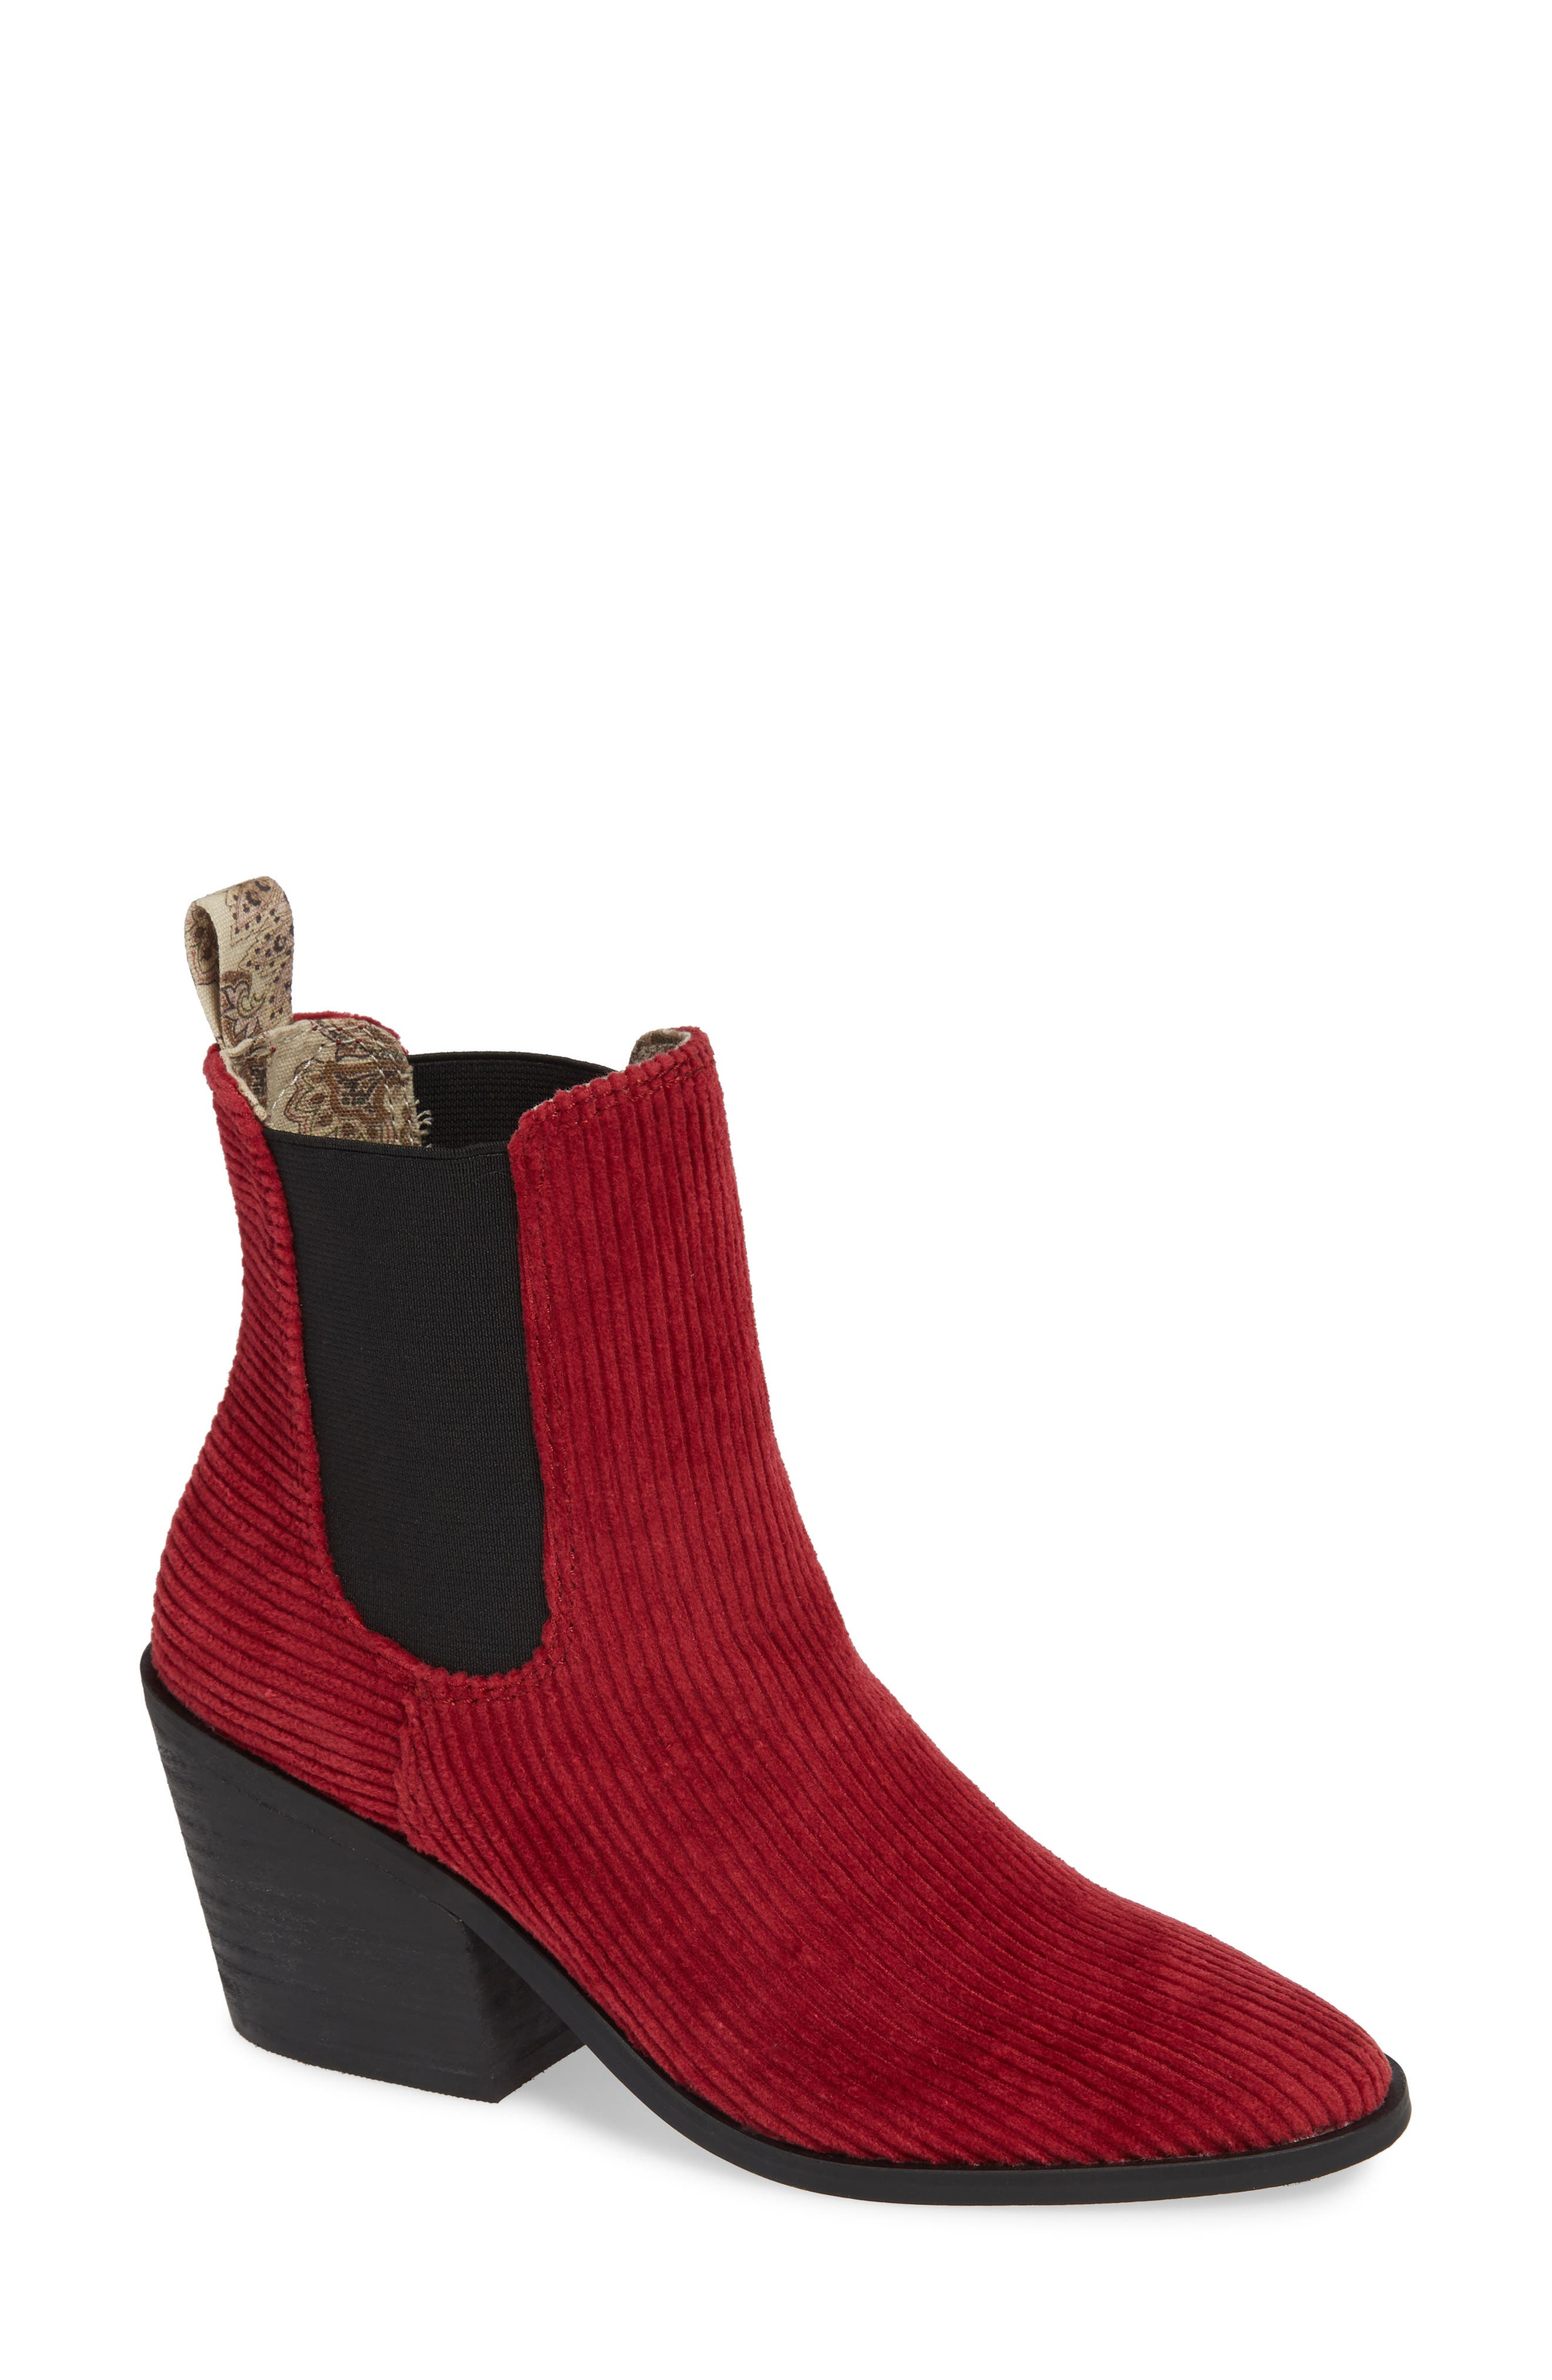 Band Of Gypsies Shadow Chelsea Boot, Red